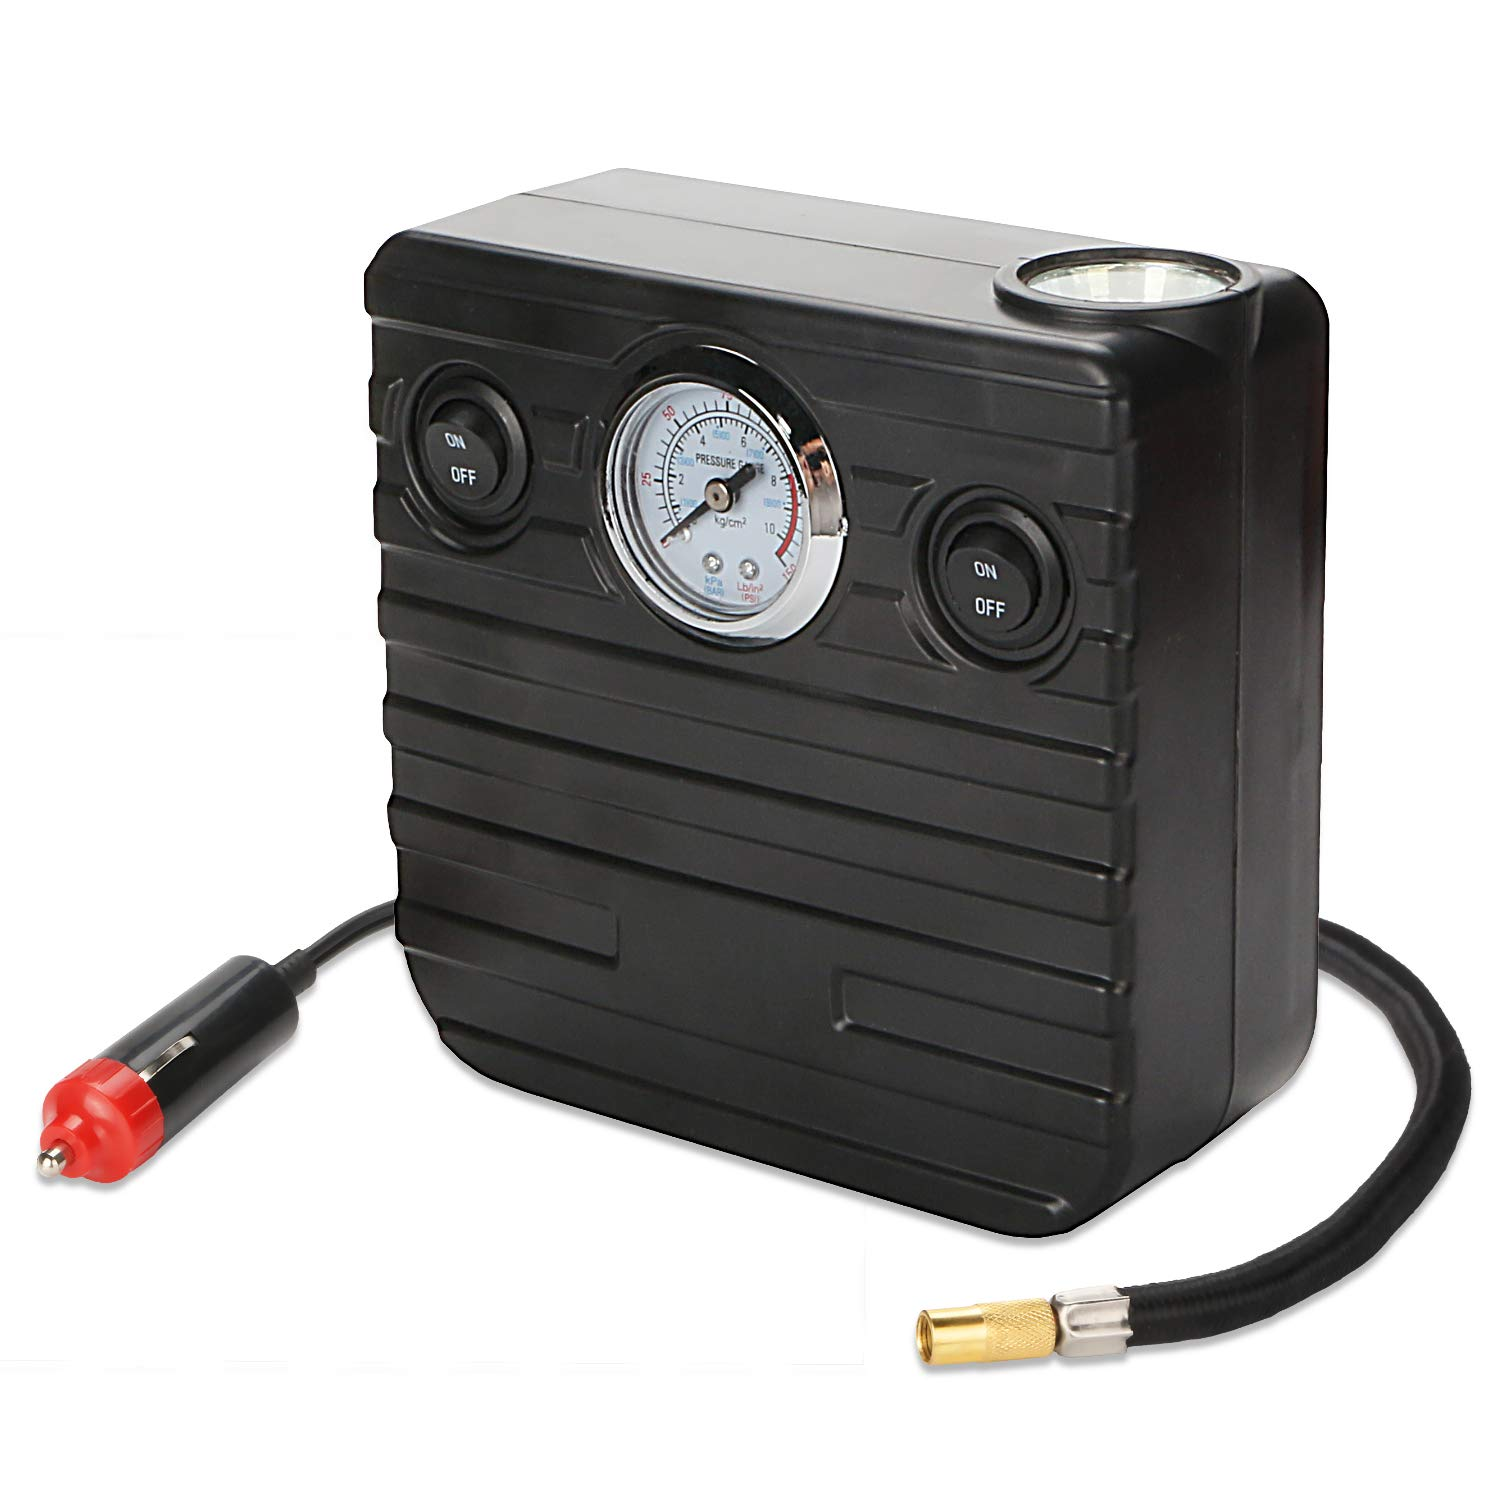 Tcisa Portable Air Compressor Pump 150 PSI - DC 12V Tire Pump Tire Inflator with Analog Display Pressure Gauge for Car